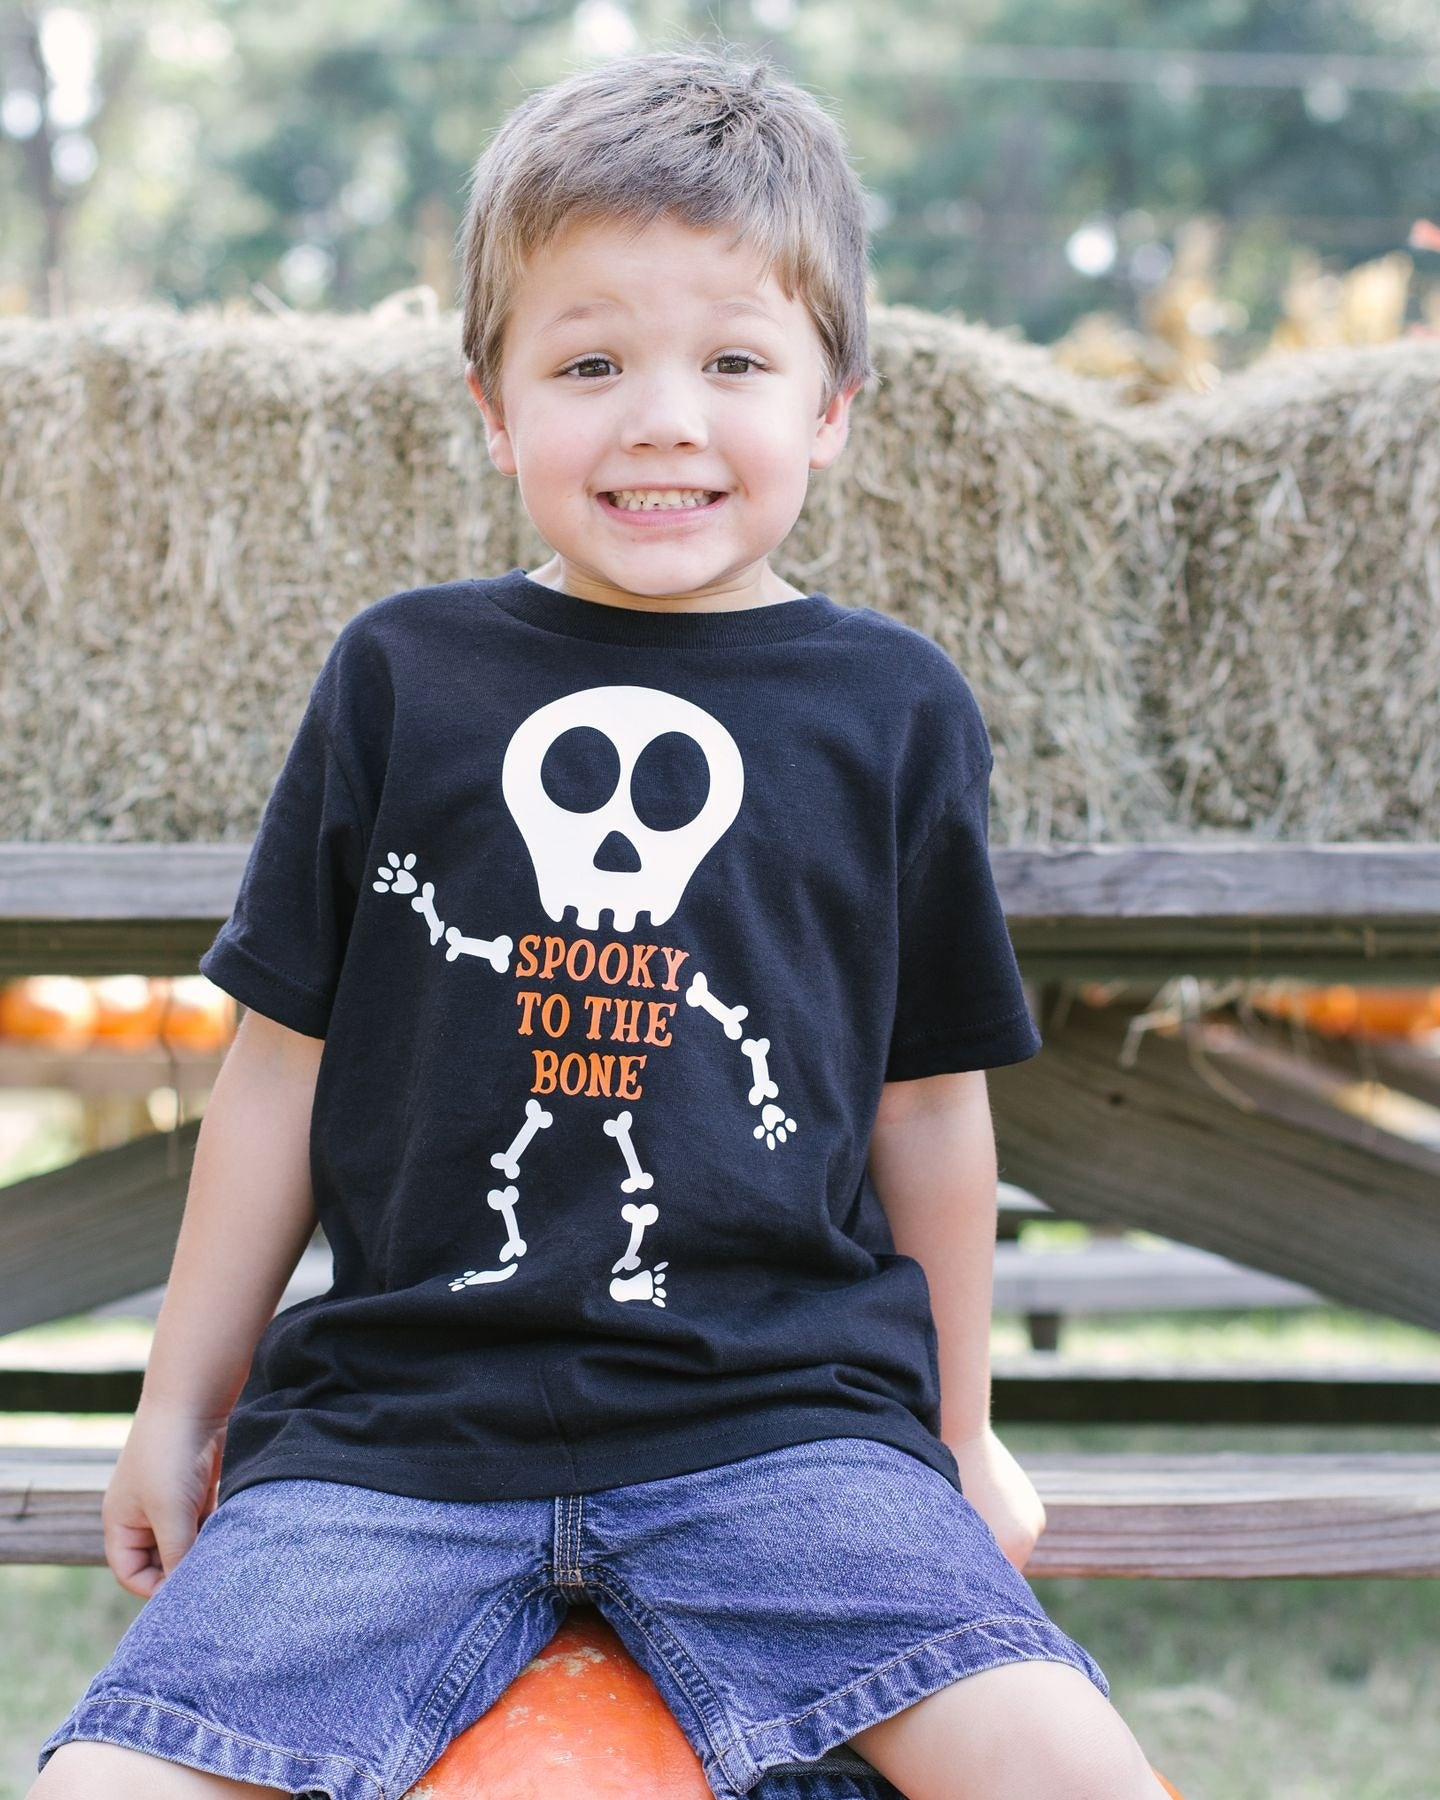 Spooky To The Bone - Toddler/Youth T-Shirt